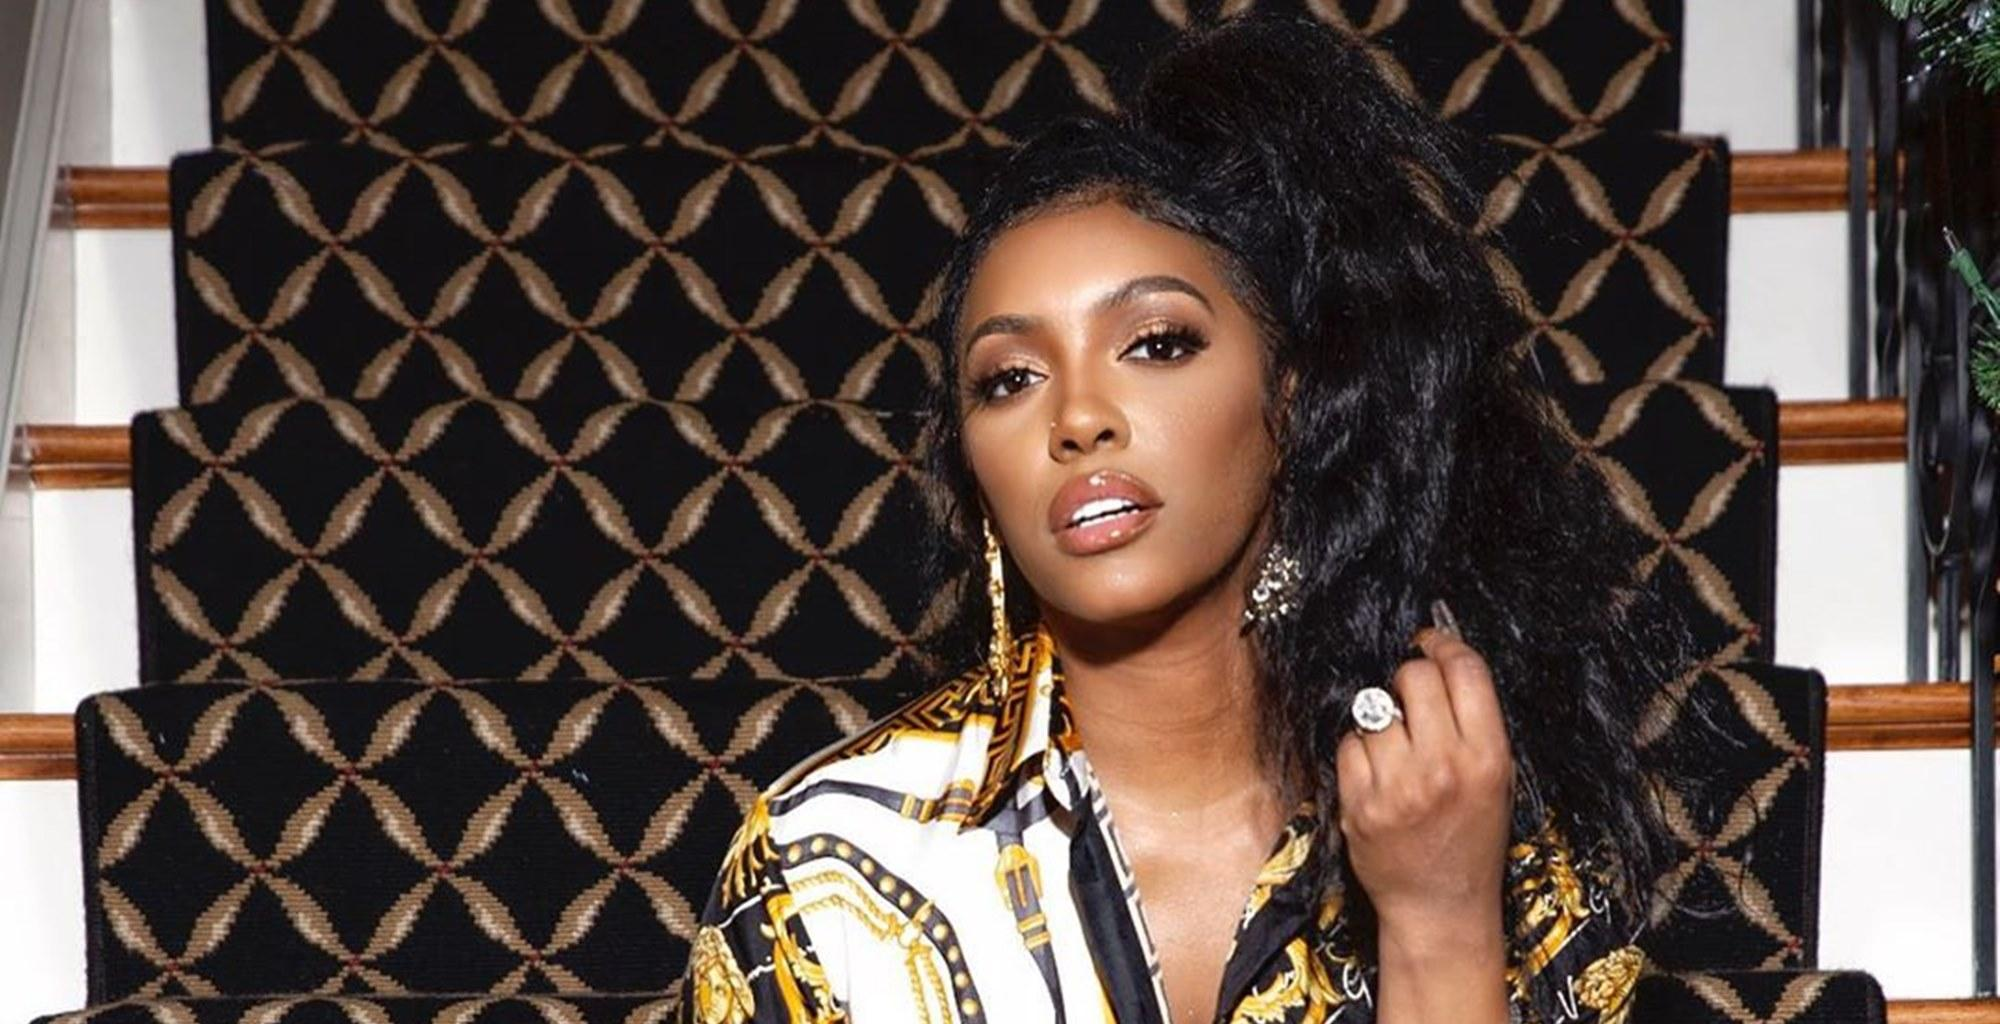 Porsha Williams Is Pregnant With Baby Number 2 According To A Post Shared By Fiancé Dennis McKinley